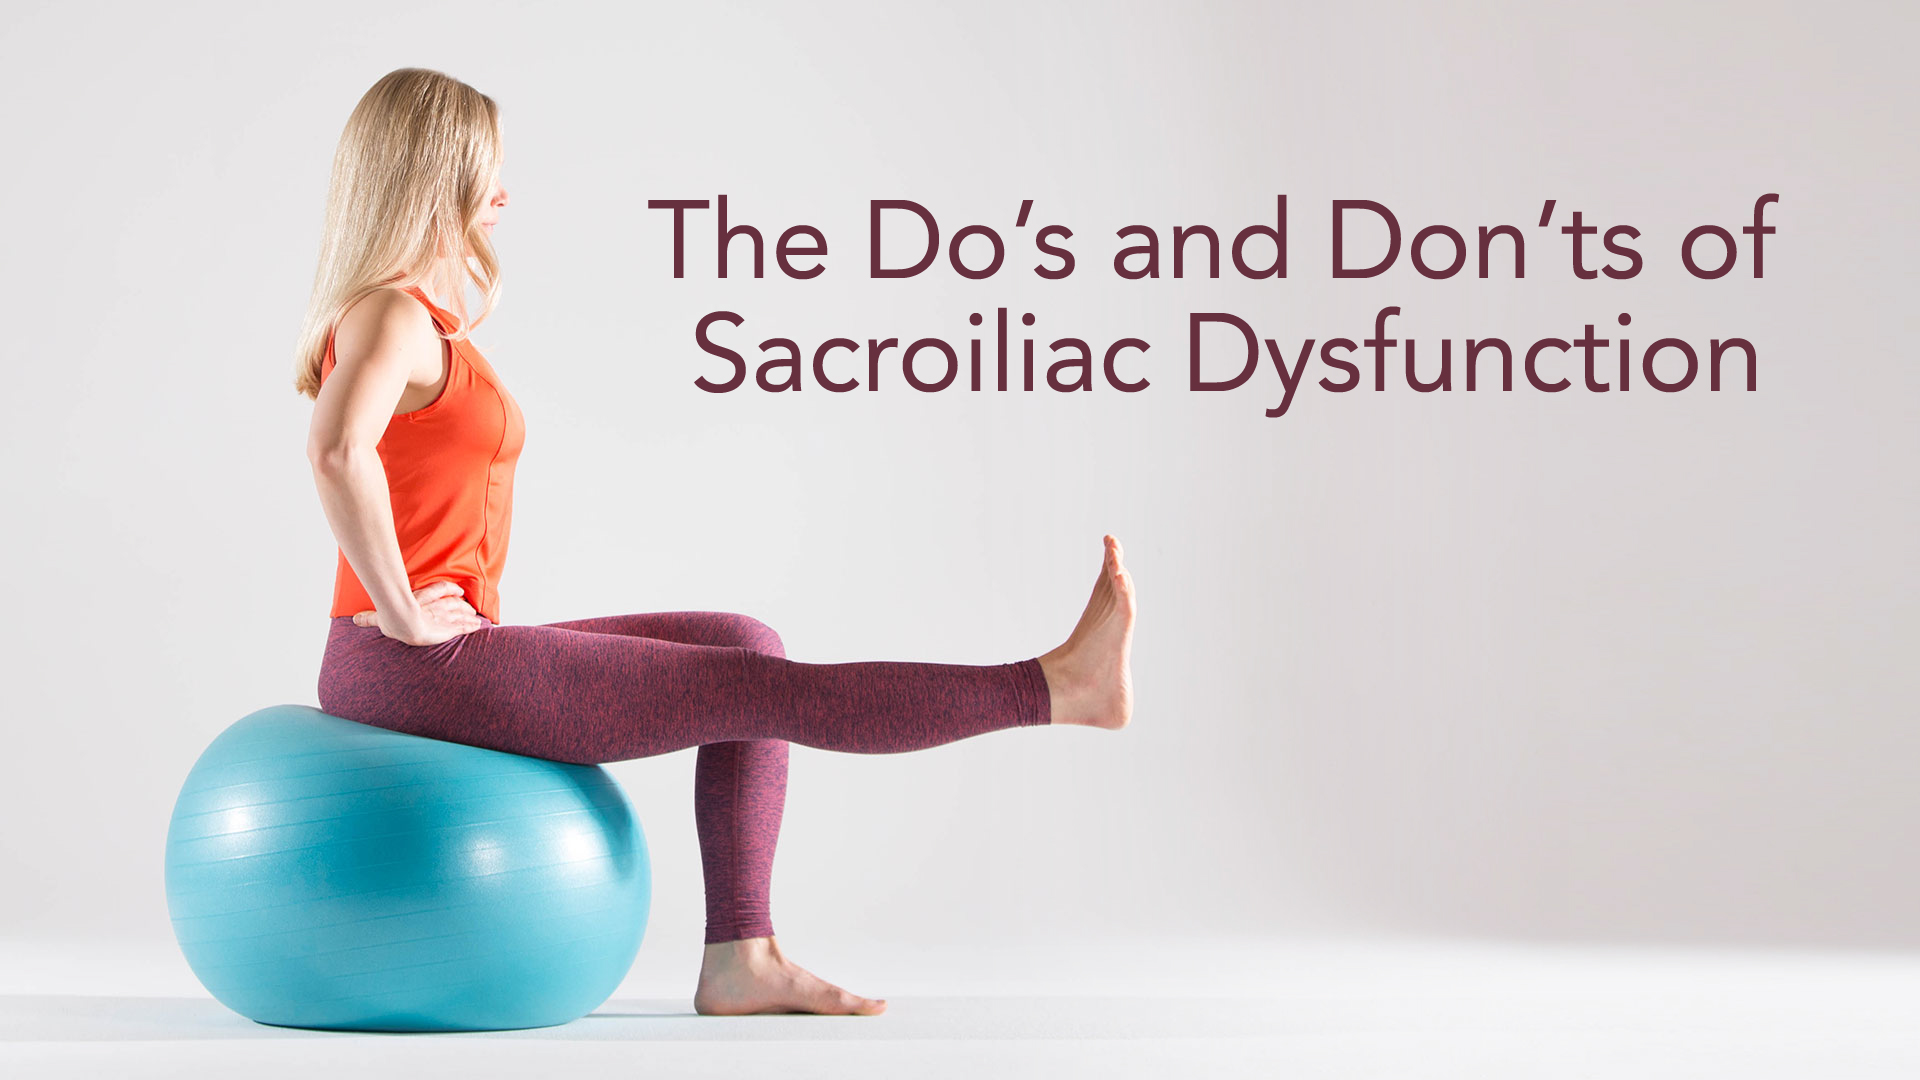 The Do's and Don'ts of Sacroiliac Dysfunction